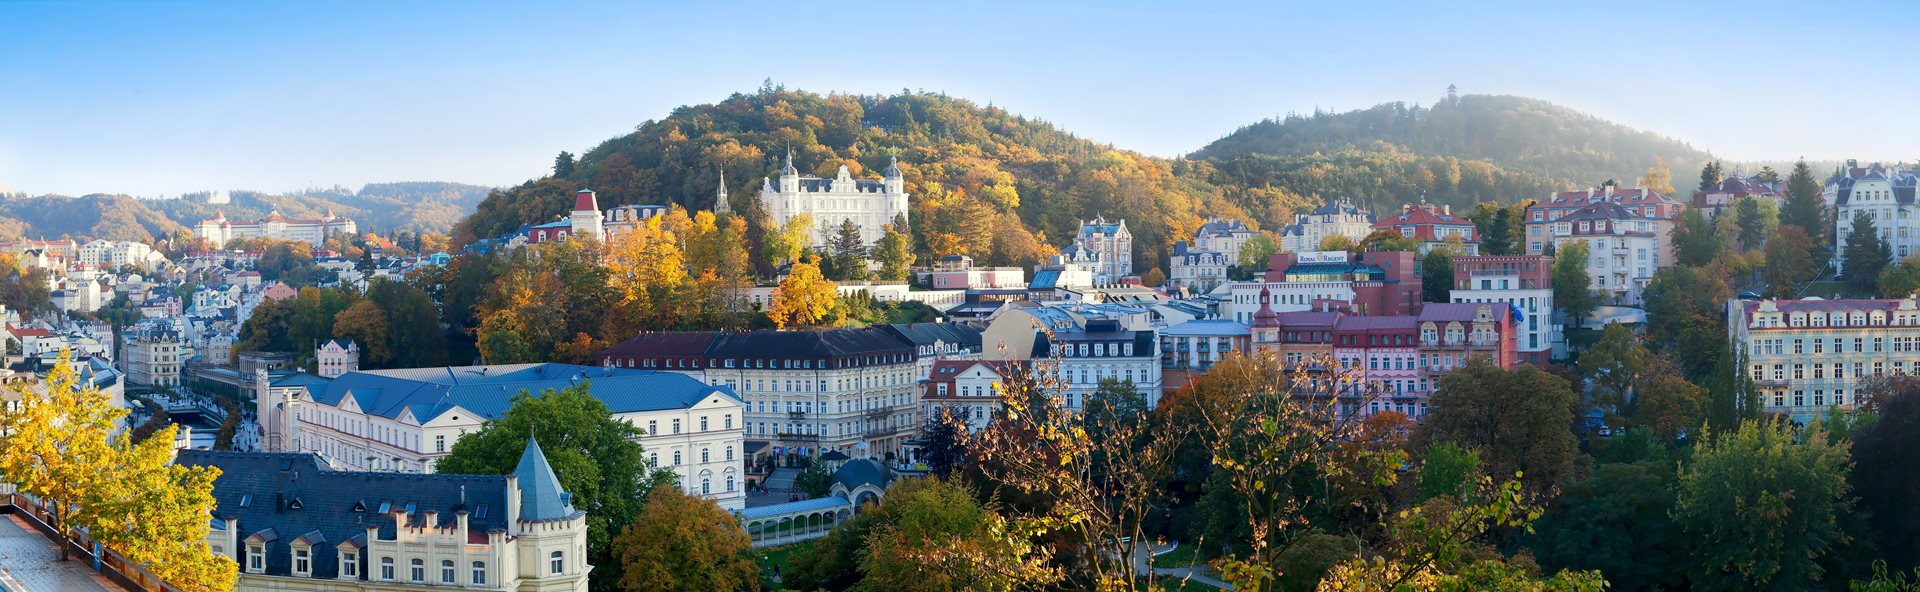 5 Things to See and Do in Karlovy Vary